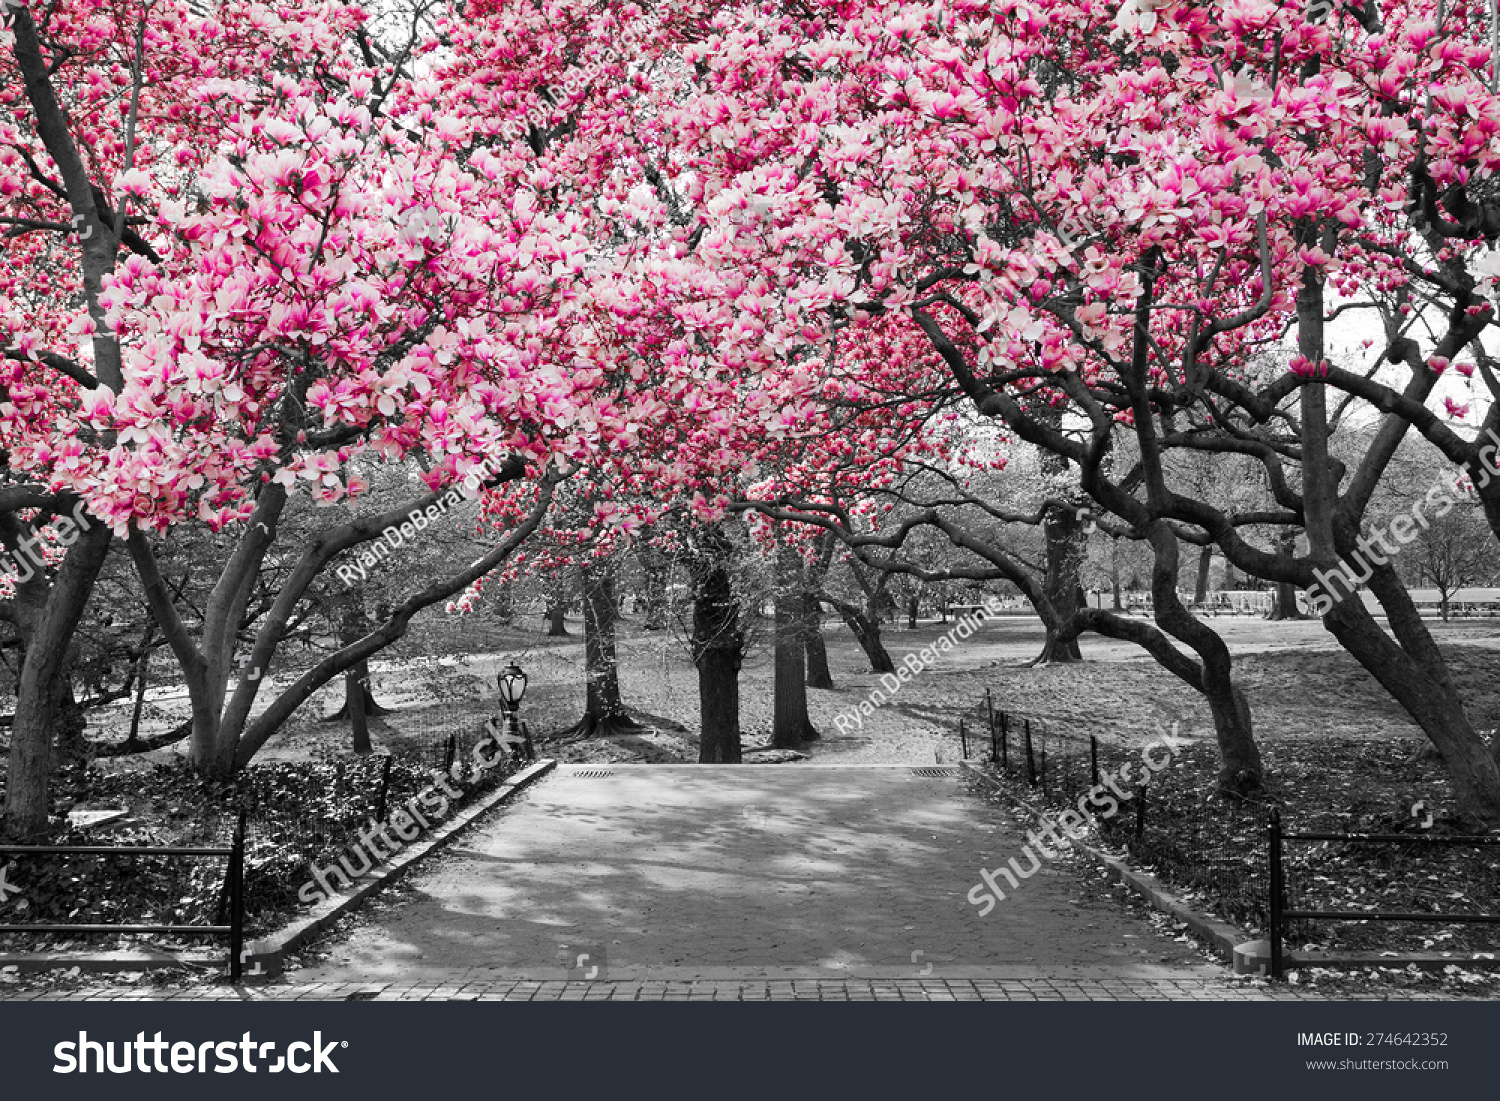 Pink blossoms in central park black and white landscape new york city